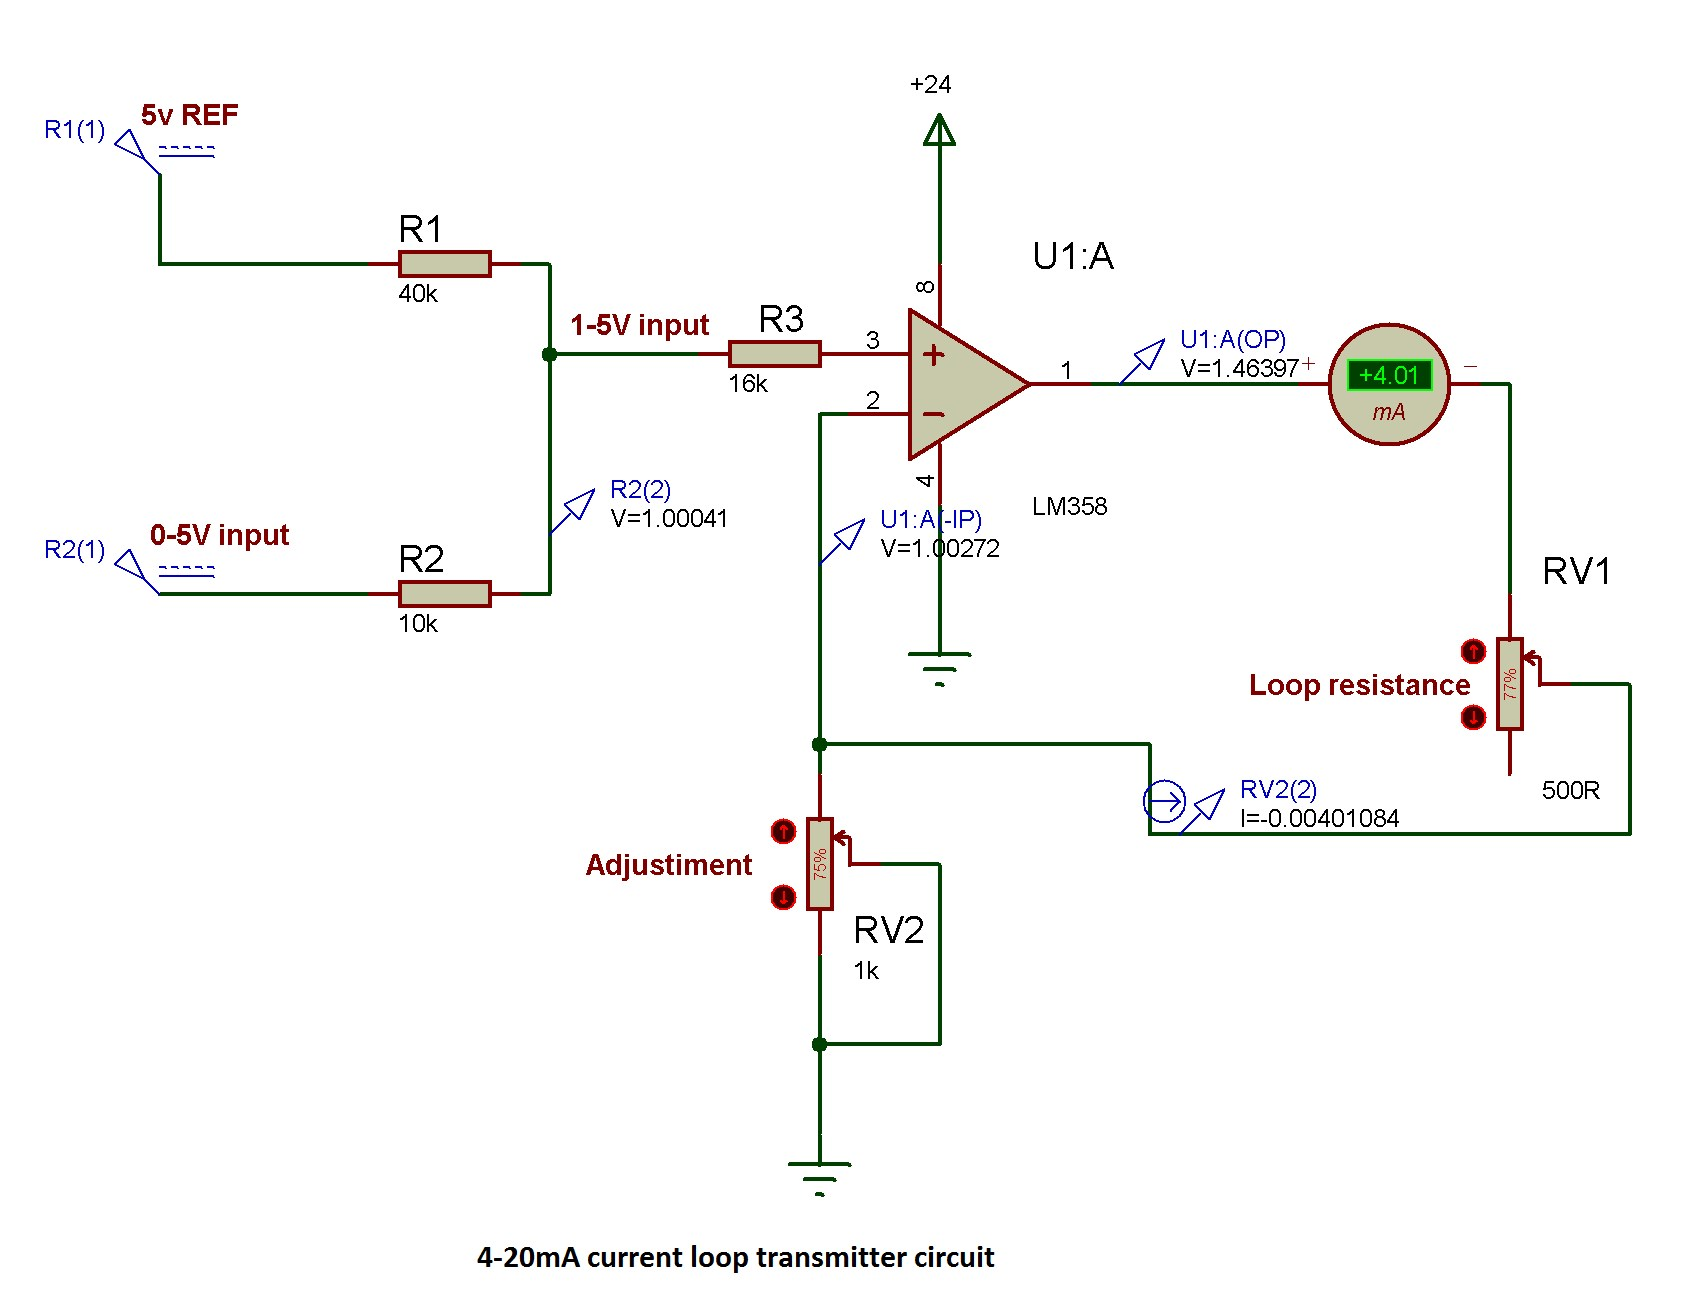 hight resolution of how can i maintain a standard 4 20ma output for a large current loop which will be stable even if loop resistance differs from standard 250